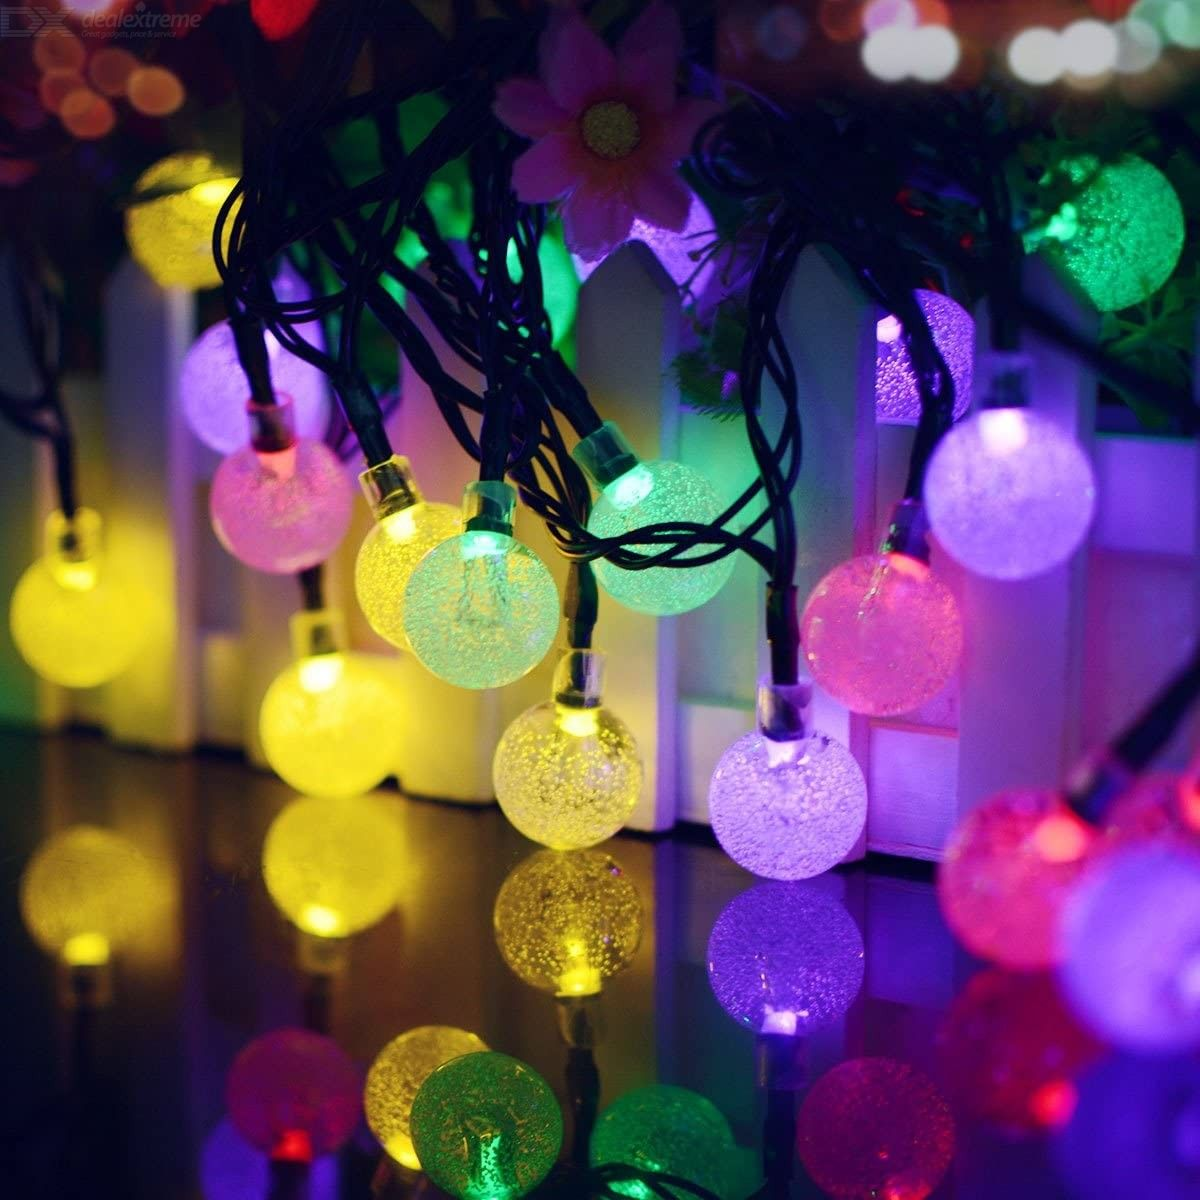 Garden Solar String Lights 20 LED Crystal Ball Decorative Lights 16ft Waterproof Outdoor Fairy Lights for Patio Yard Christmas